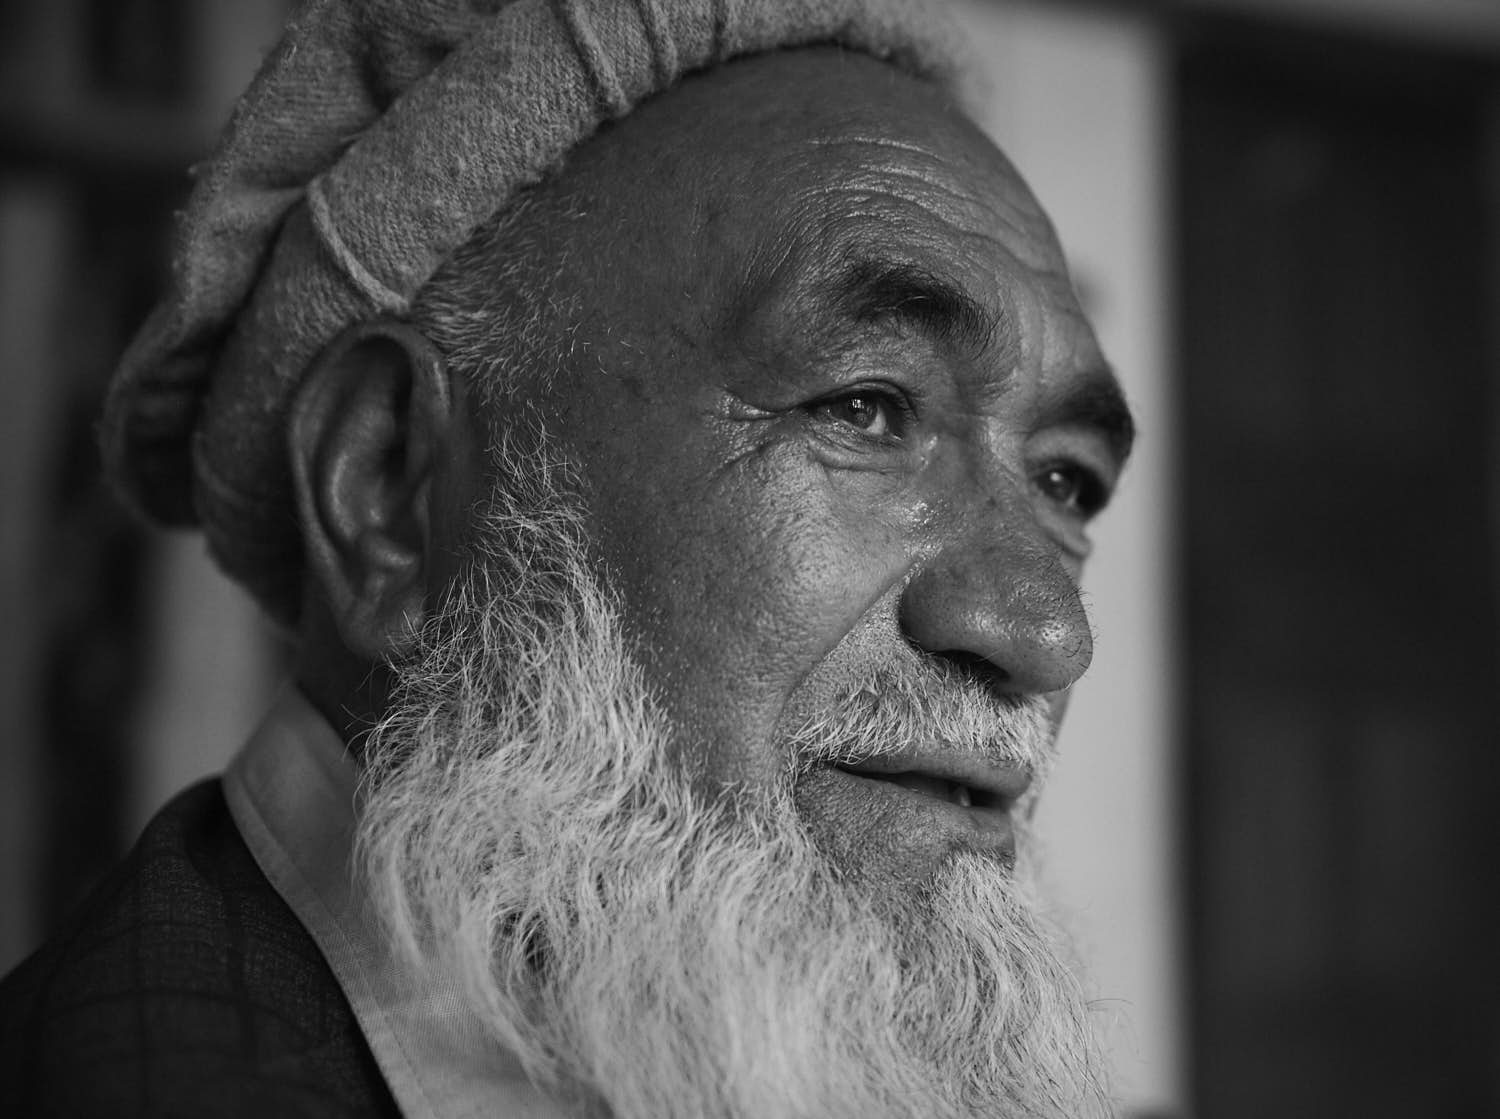 A portrait of a Balti man with a long white beard. Black and white photography.